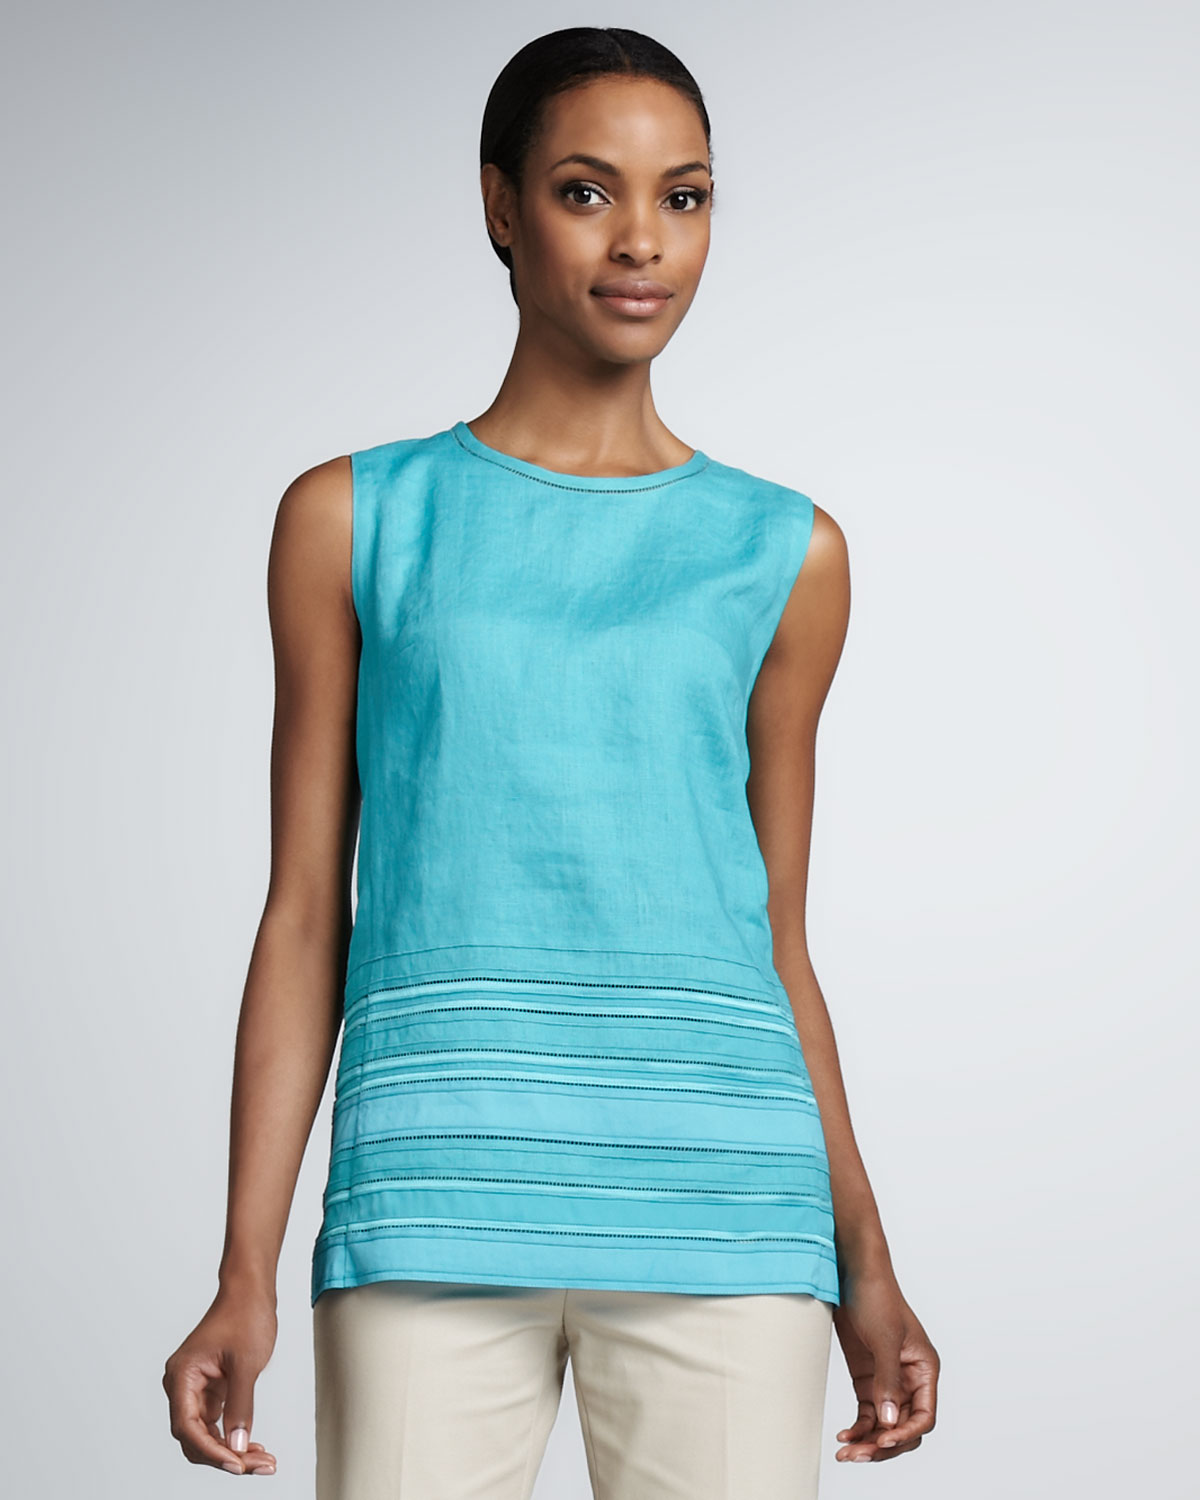 148 Best Linen Images On Pinterest: Lafayette 148 New York Womens Denna Linen Sleeveless Top